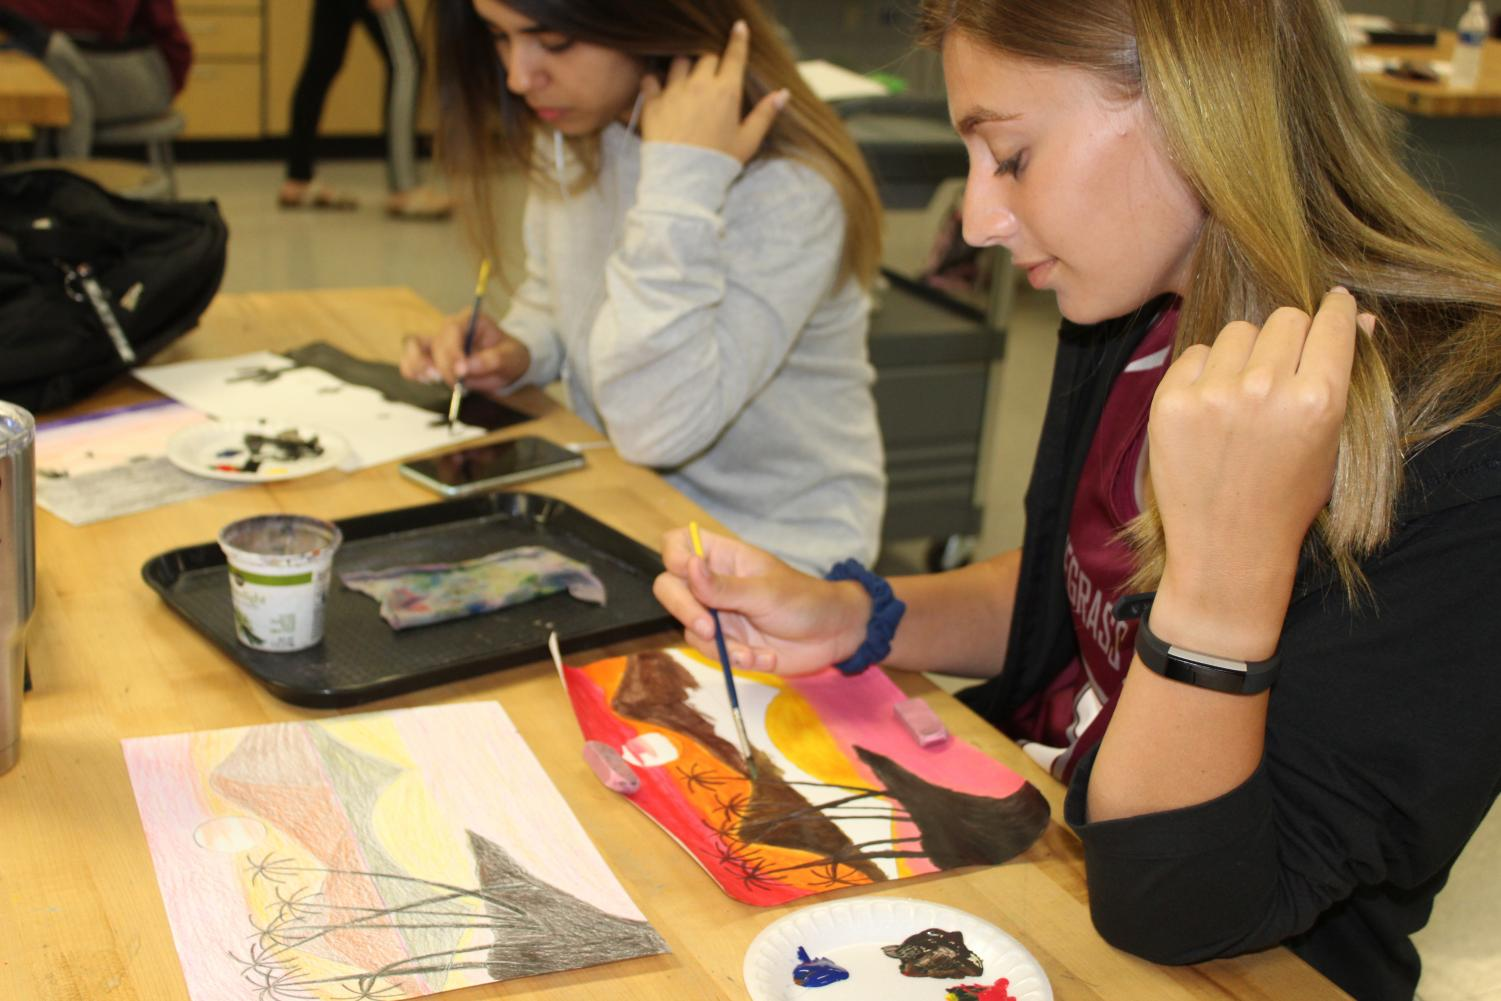 Sereen Mustafa and Carly Norman painting their landscape.